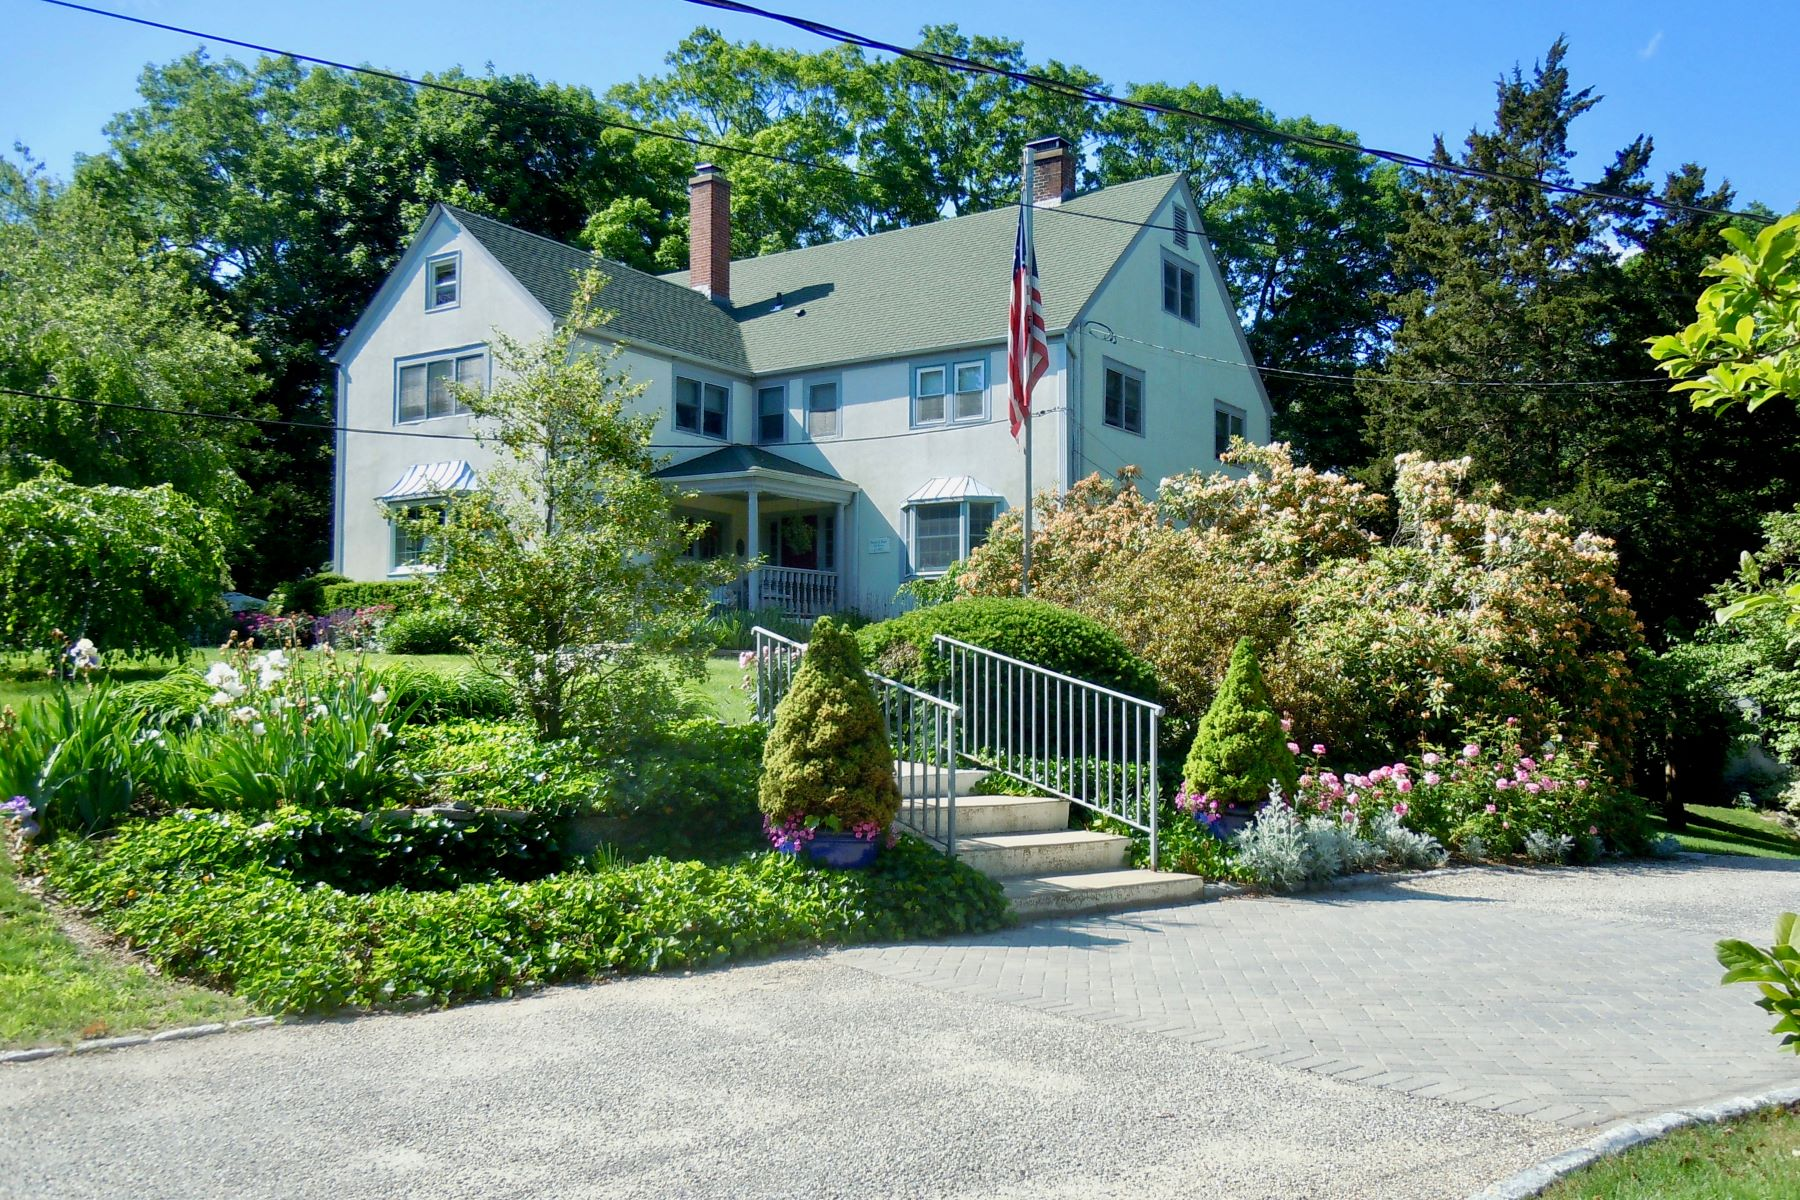 Other Residential for Sale at The Historic Tidewater Inn 949 Boston Post Road, Madison, Connecticut, 06443 United States